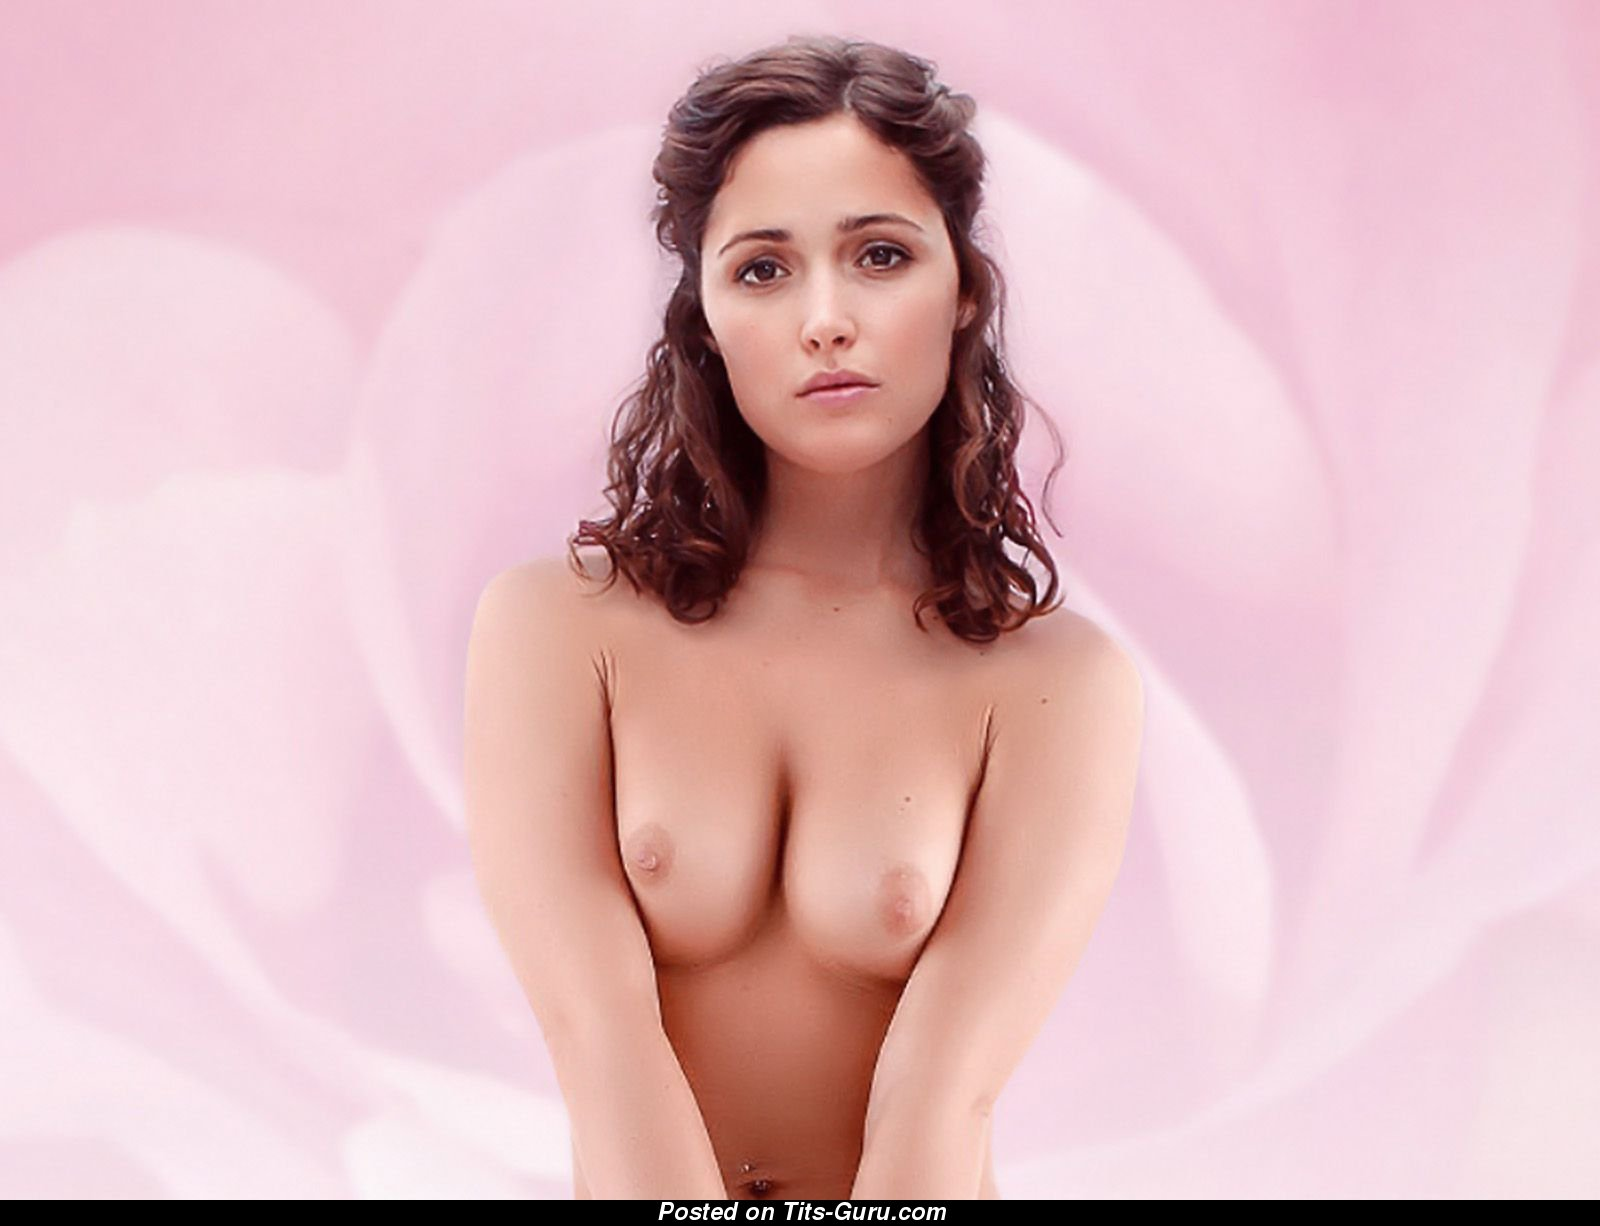 Byrne pics rose topless nude